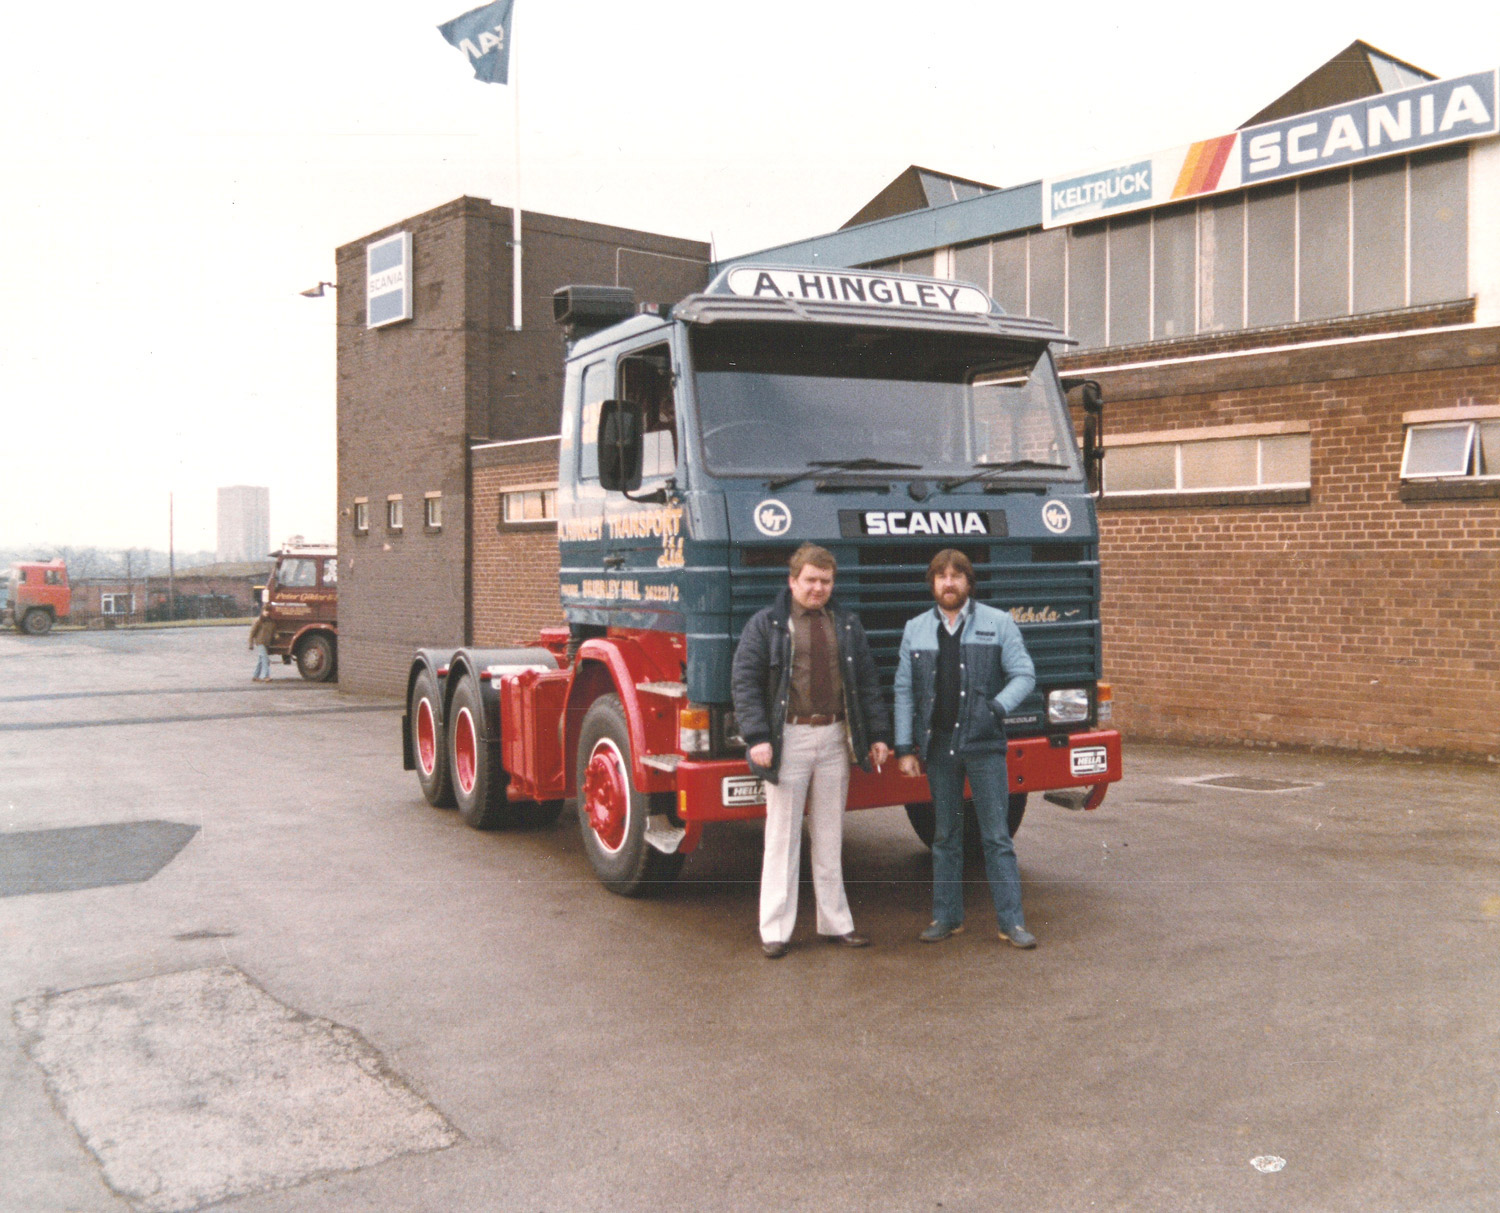 A. Hingley's first Scania from Keltruck (Alan Hingley & Neil Jones)